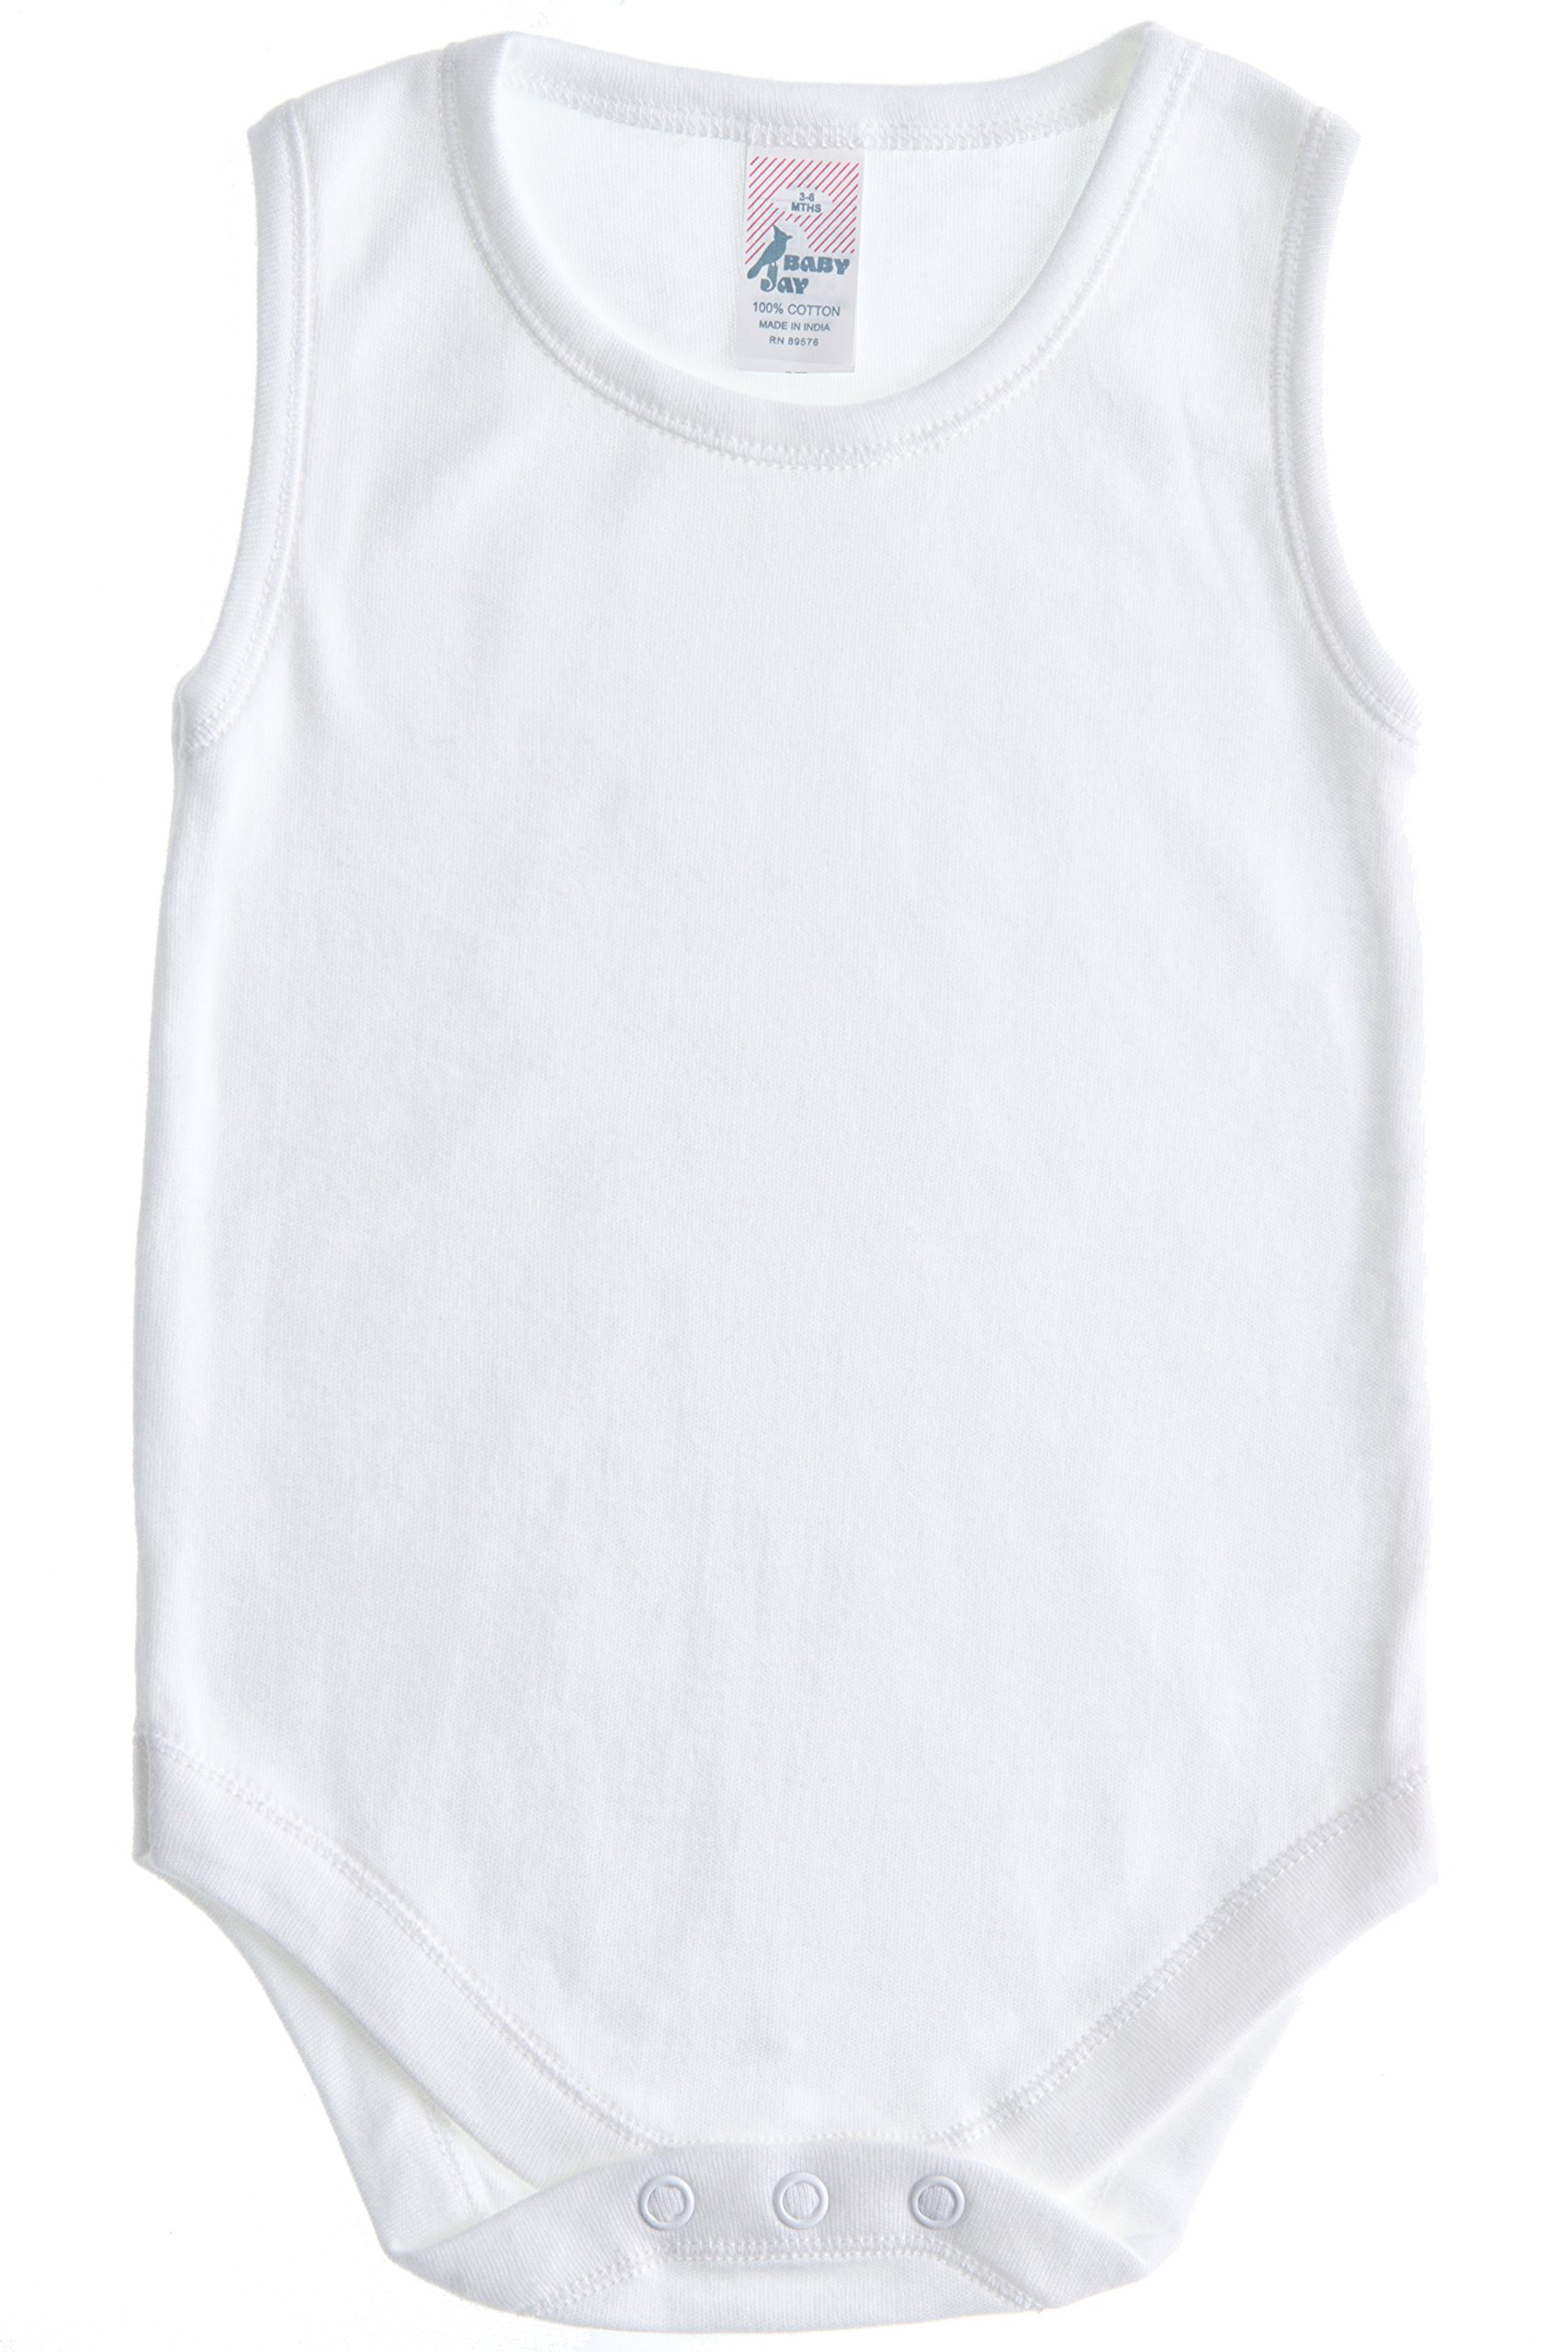 Soft Cotton Sleeveless Onesie Bodysuit, WSNR 36-48 2-Pack by Baby Jay (Image #2)